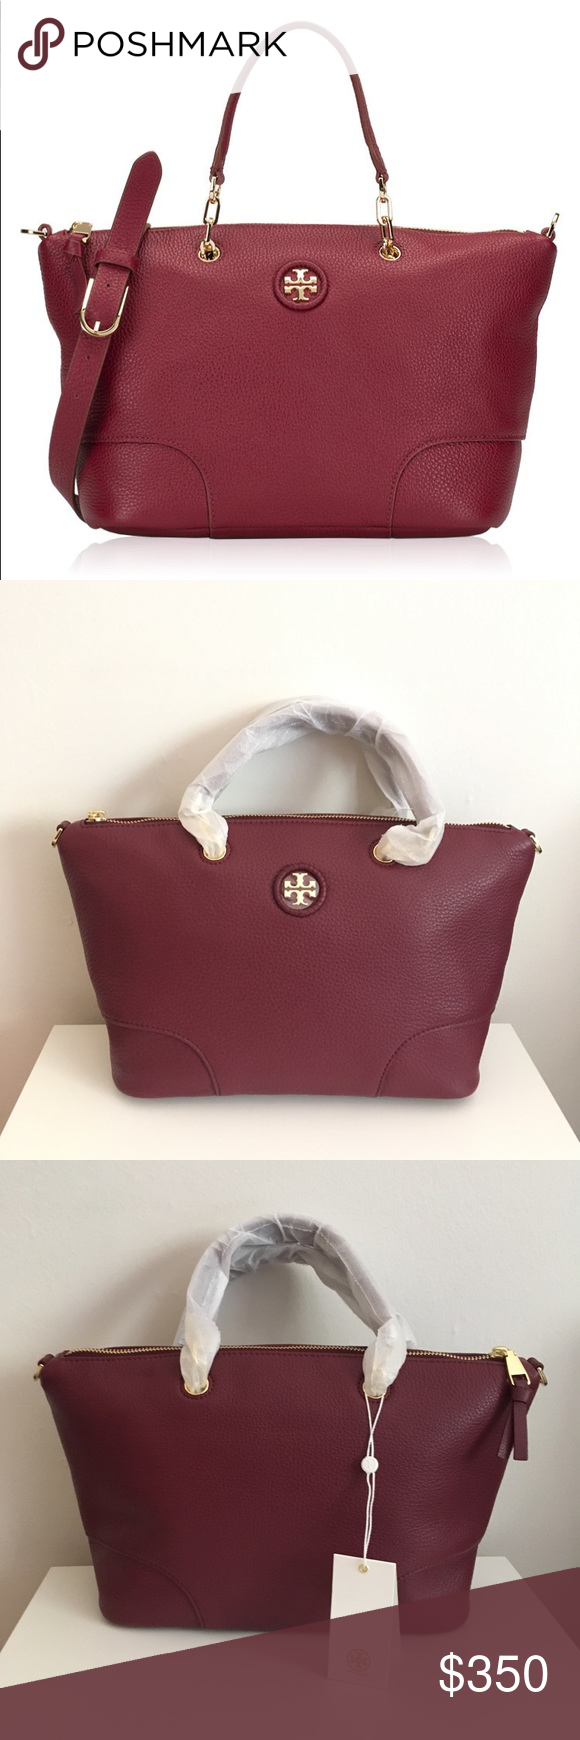 8b37ed18d06f Tory burch whipstitch logo small slouchy satchel Mew with tag attach Tory  Burch Bags Satchels